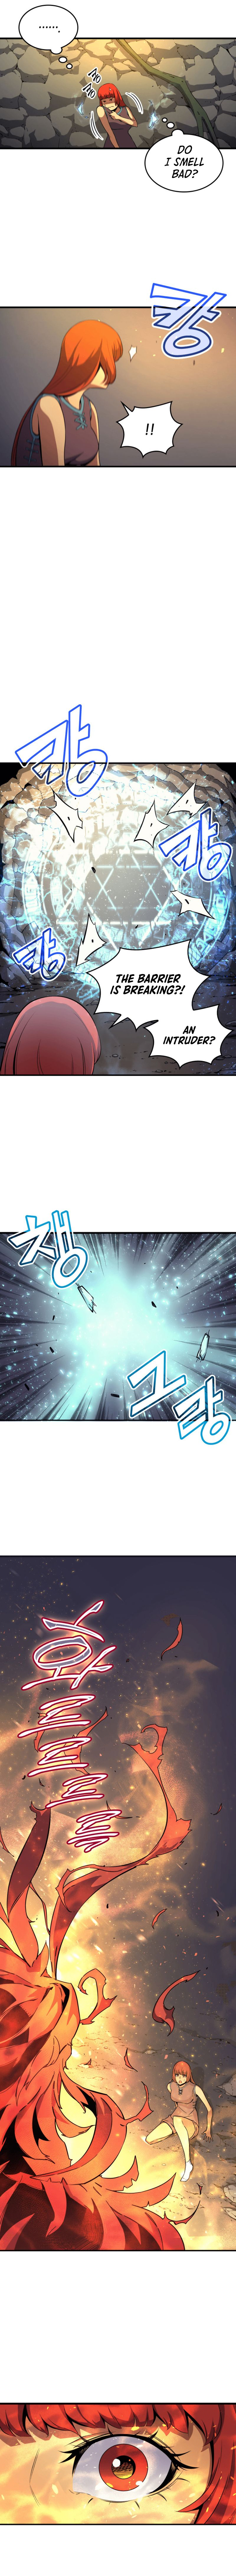 The Great Mage Returns After 4000 Years - chapter 22-eng-li